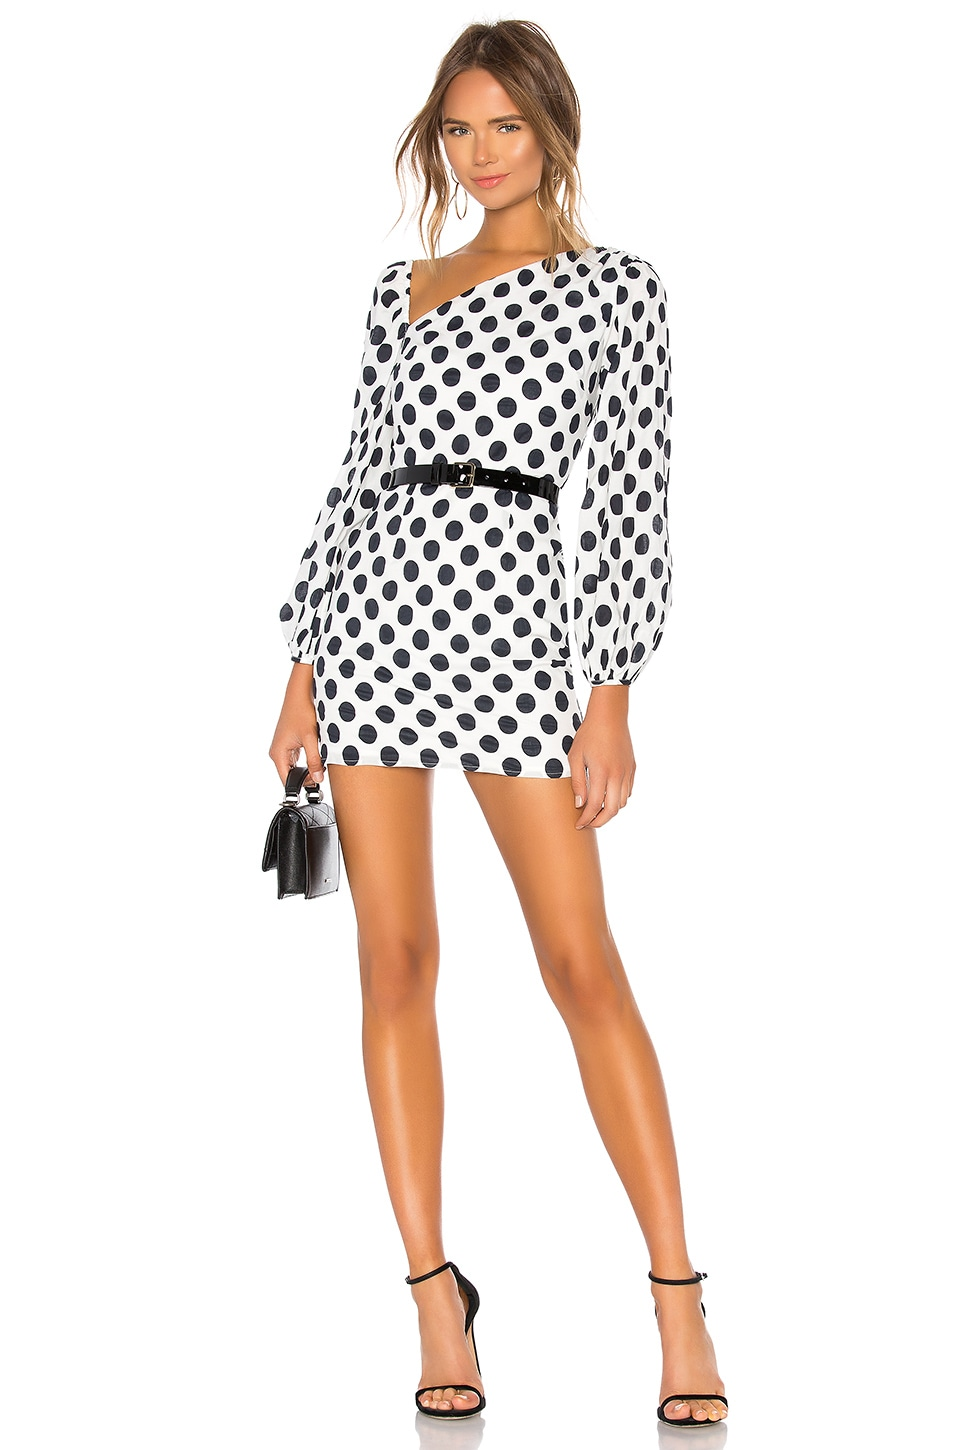 Lovers + Friends Andy Mini Dress in Black & White